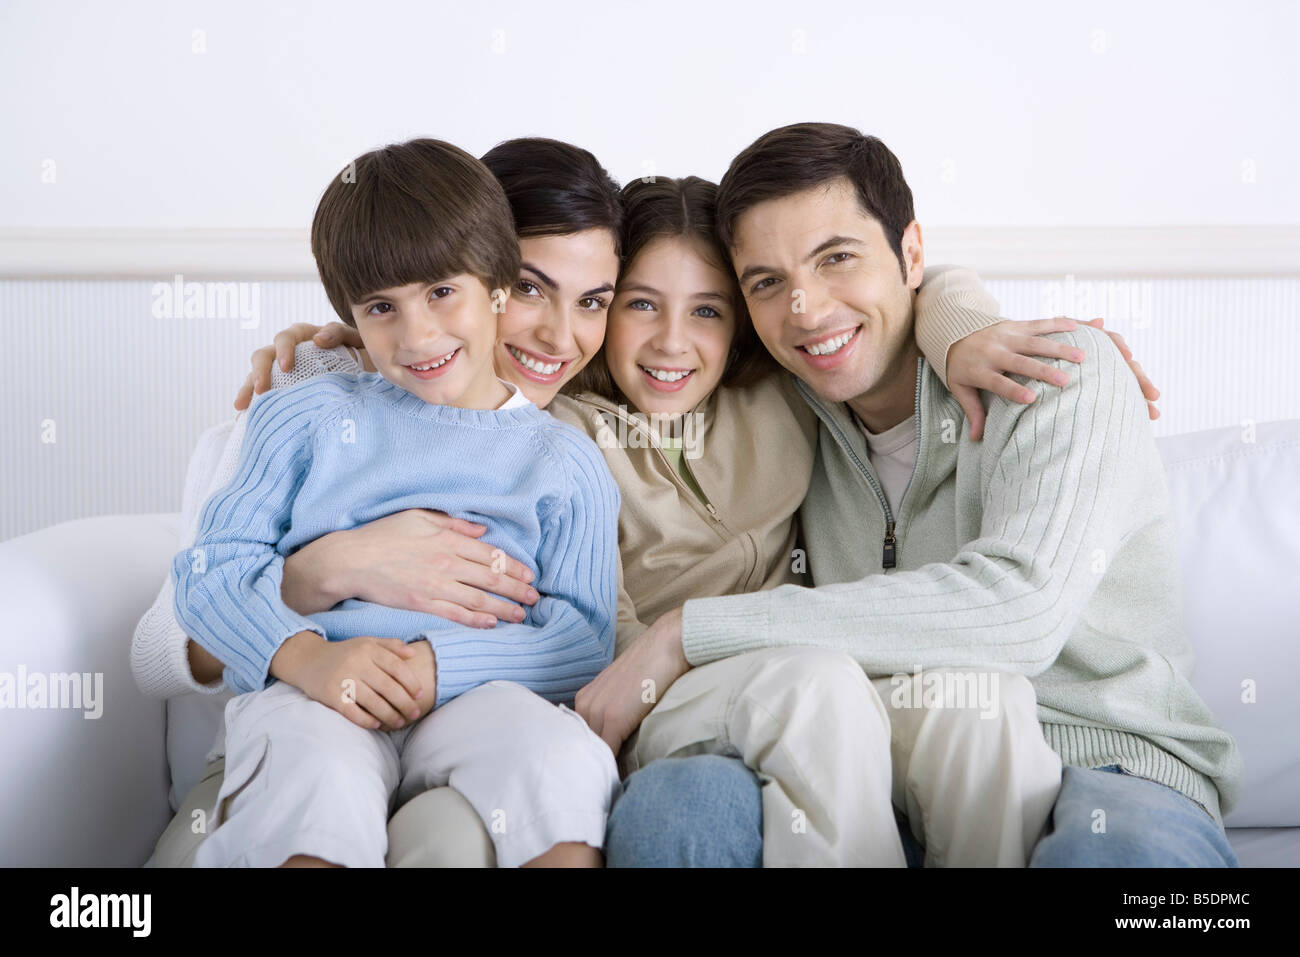 Parents and two children sitting together on sofa, portrait - Stock Image